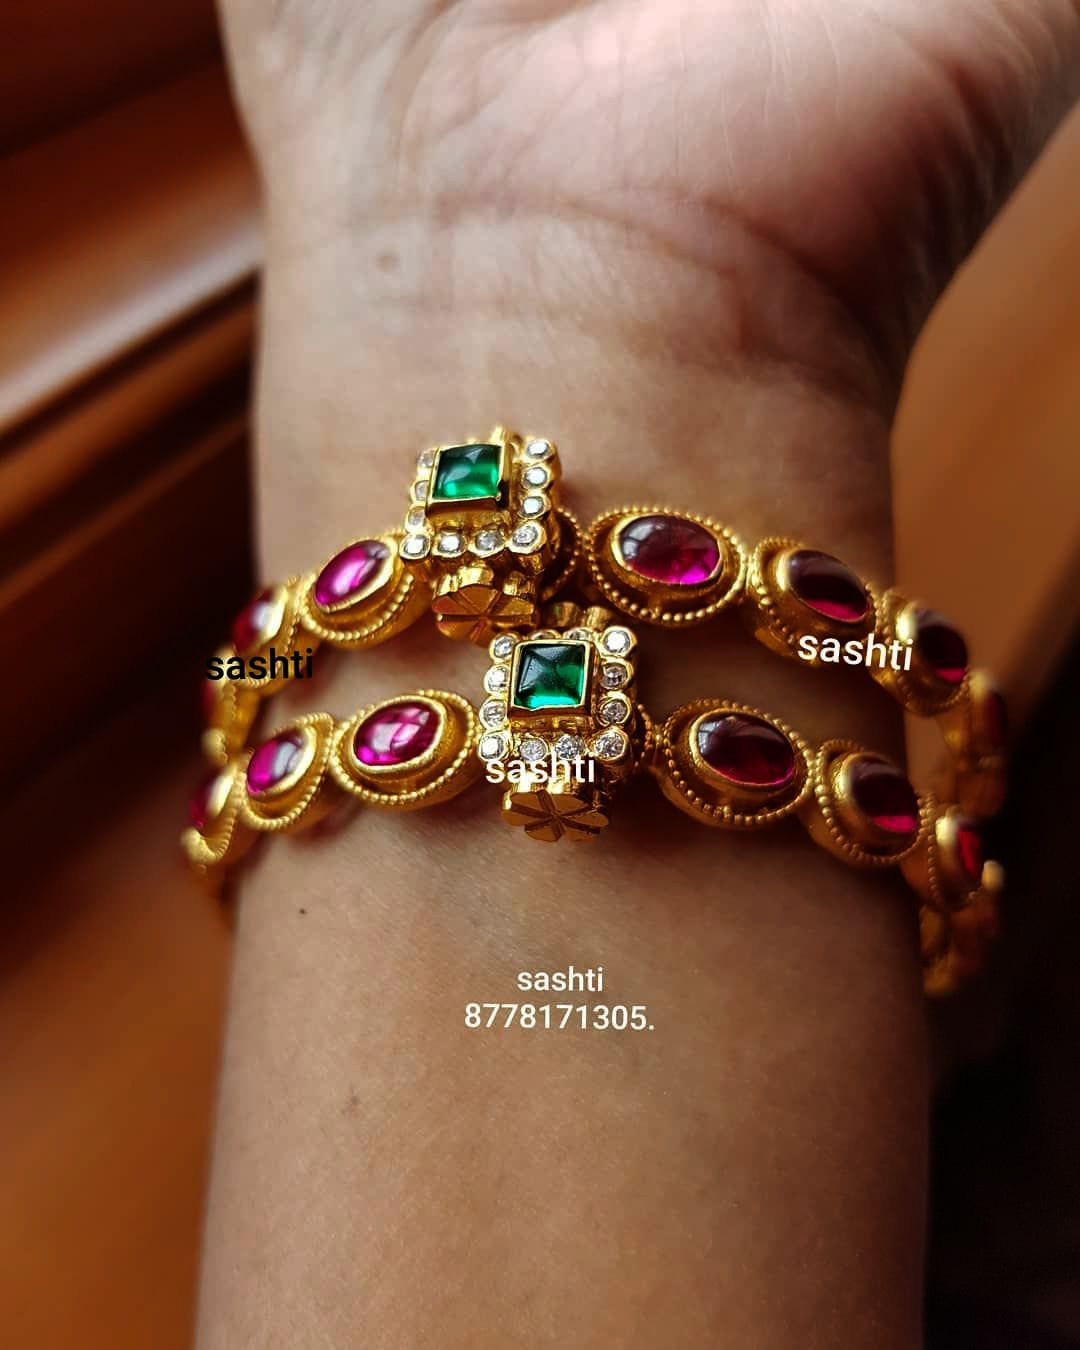 Jewelry Stores In Edison Nj : jewelry, stores, edison, Jewellery, Shops, Edison, Meaning, Jew…, Bangles, Jewelry, Designs,, Silver, Indian,